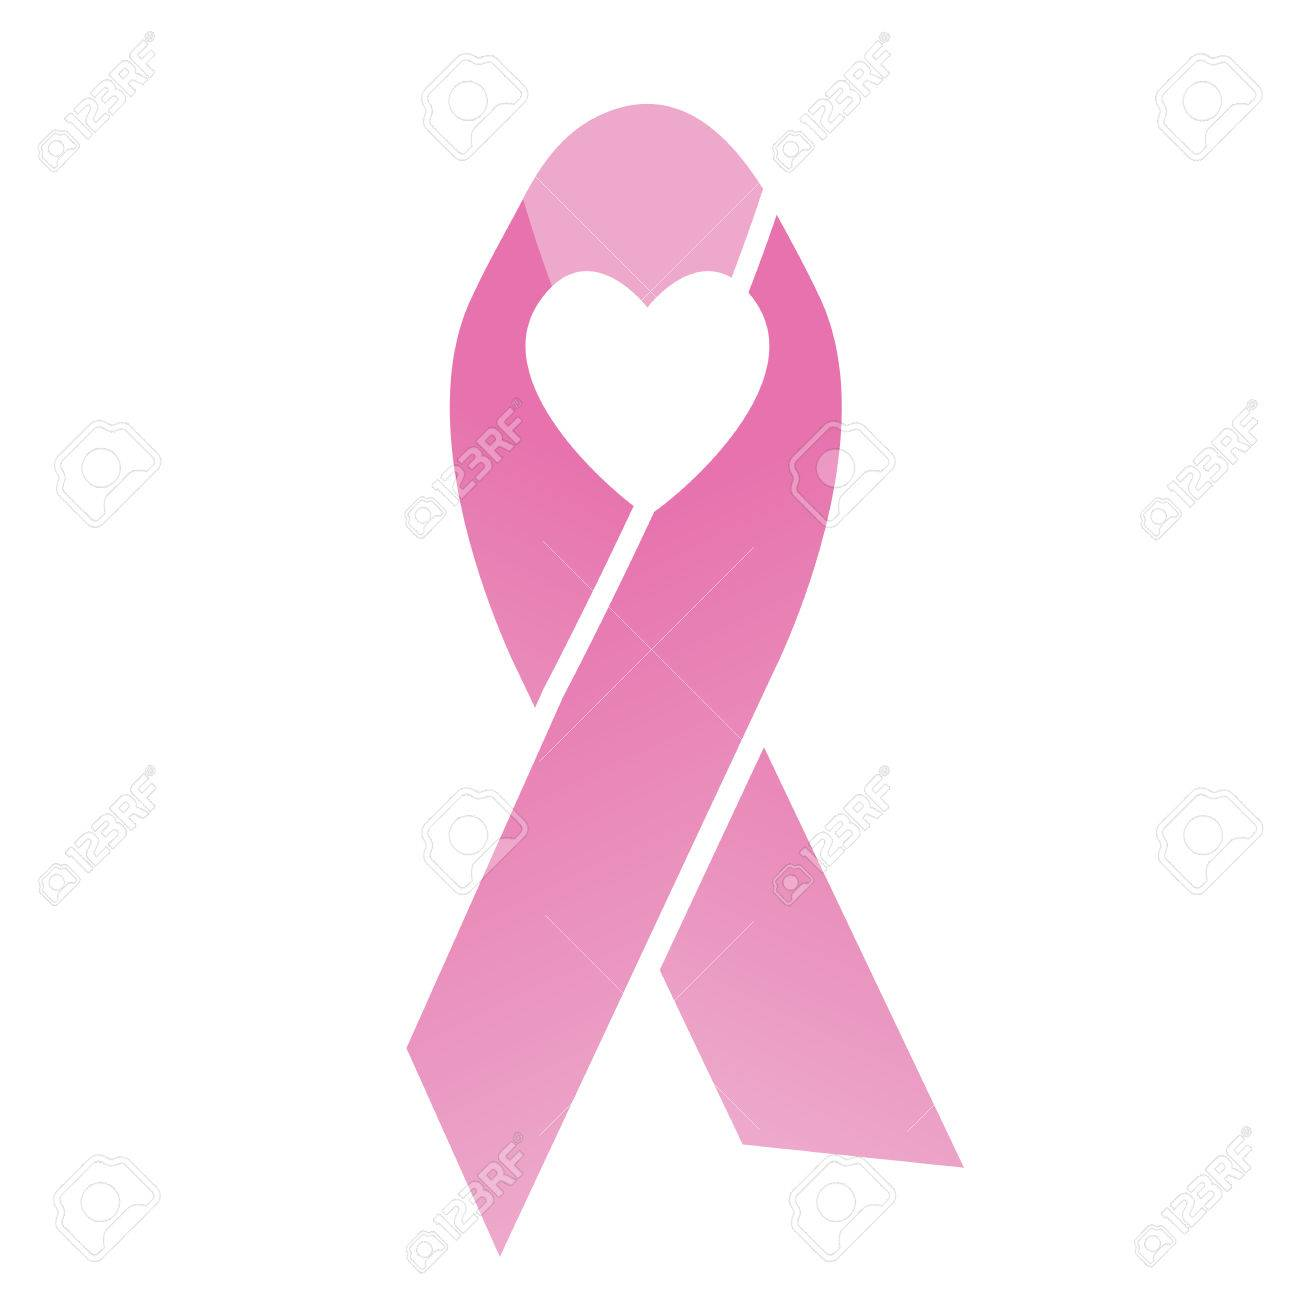 pink heart breast cancer ribbons with different differing icons rh 123rf com breast cancer ribbon vector art free breast cancer ribbon vector free download